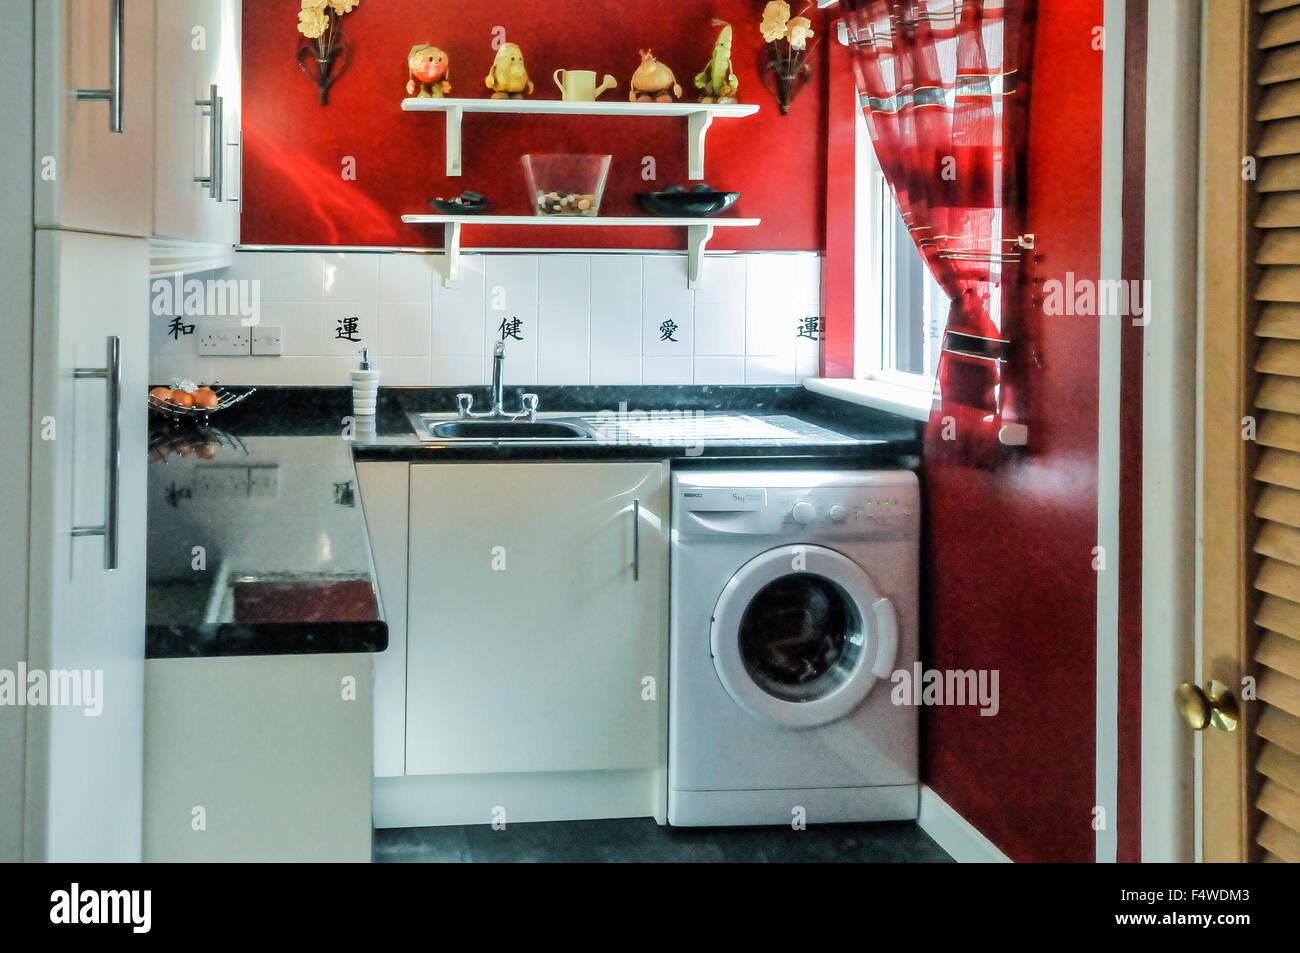 Laundry Room Sink Stock Photos & Laundry Room Sink Stock Images - Alamy